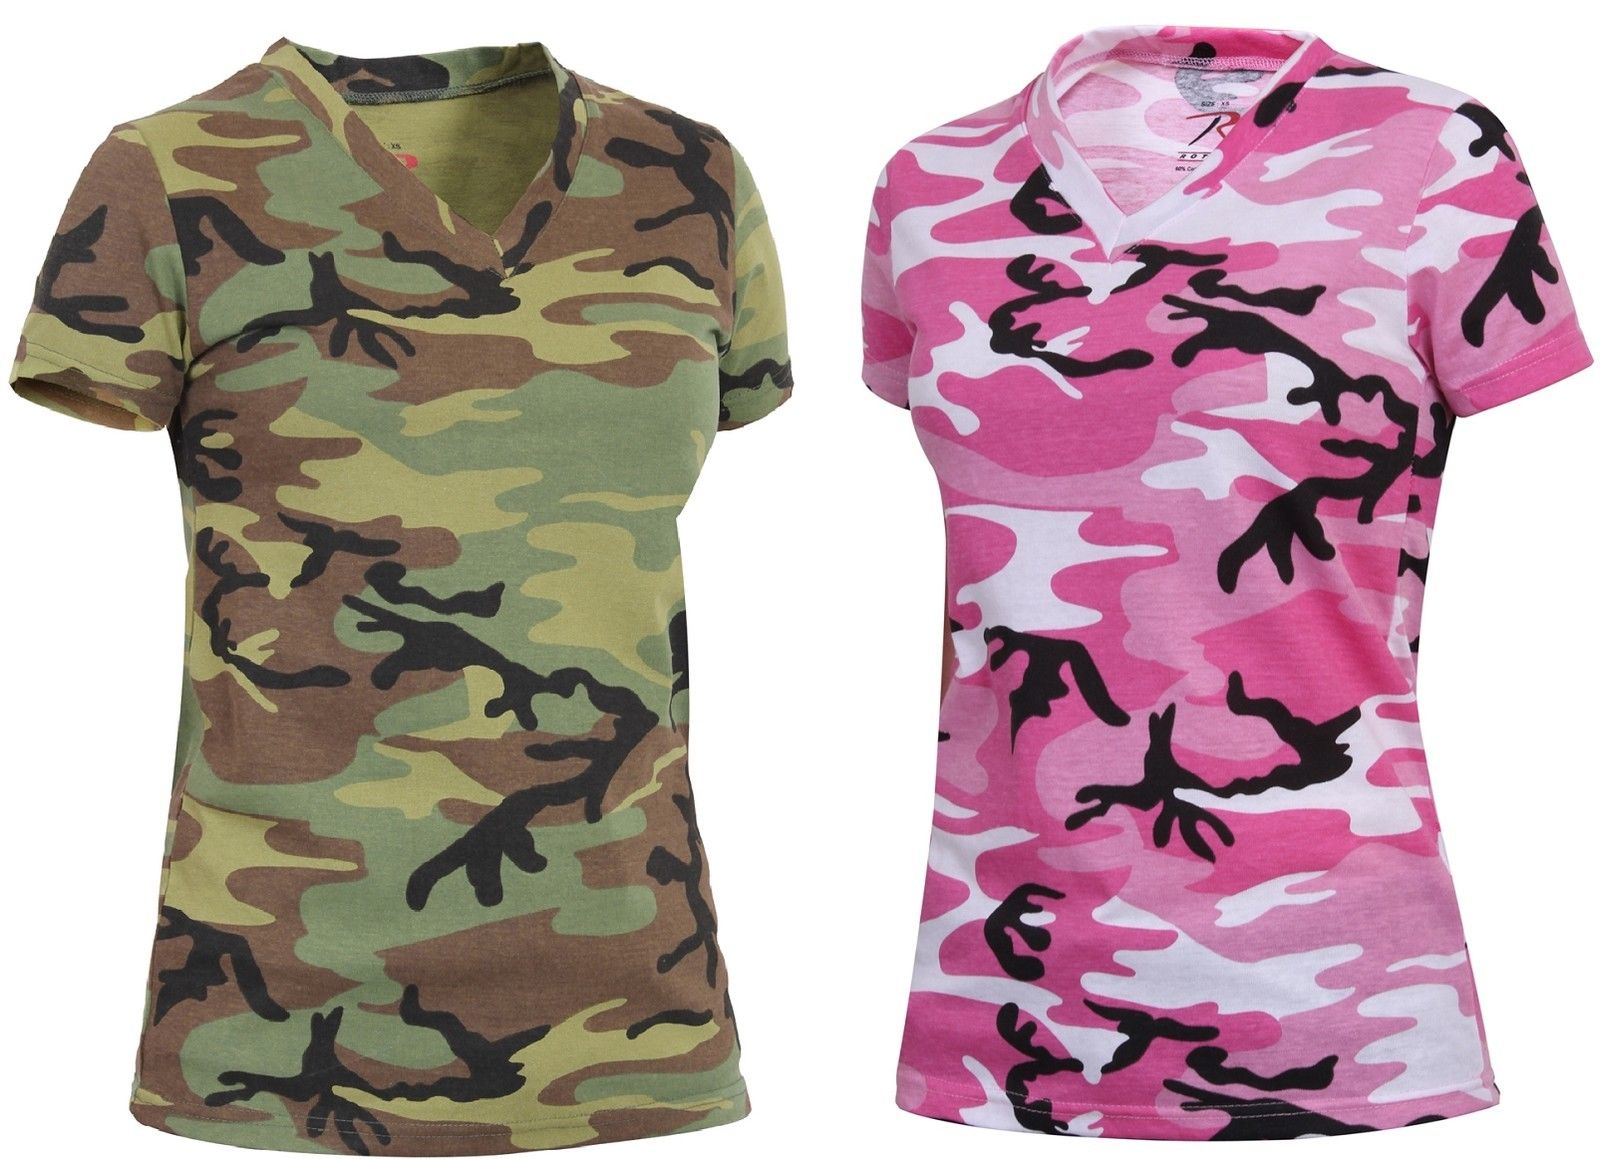 05c263dcb968 Women's Long Length Camo V-Neck T-Shirt - Rothco Woodland or Pink Camouflage  ...